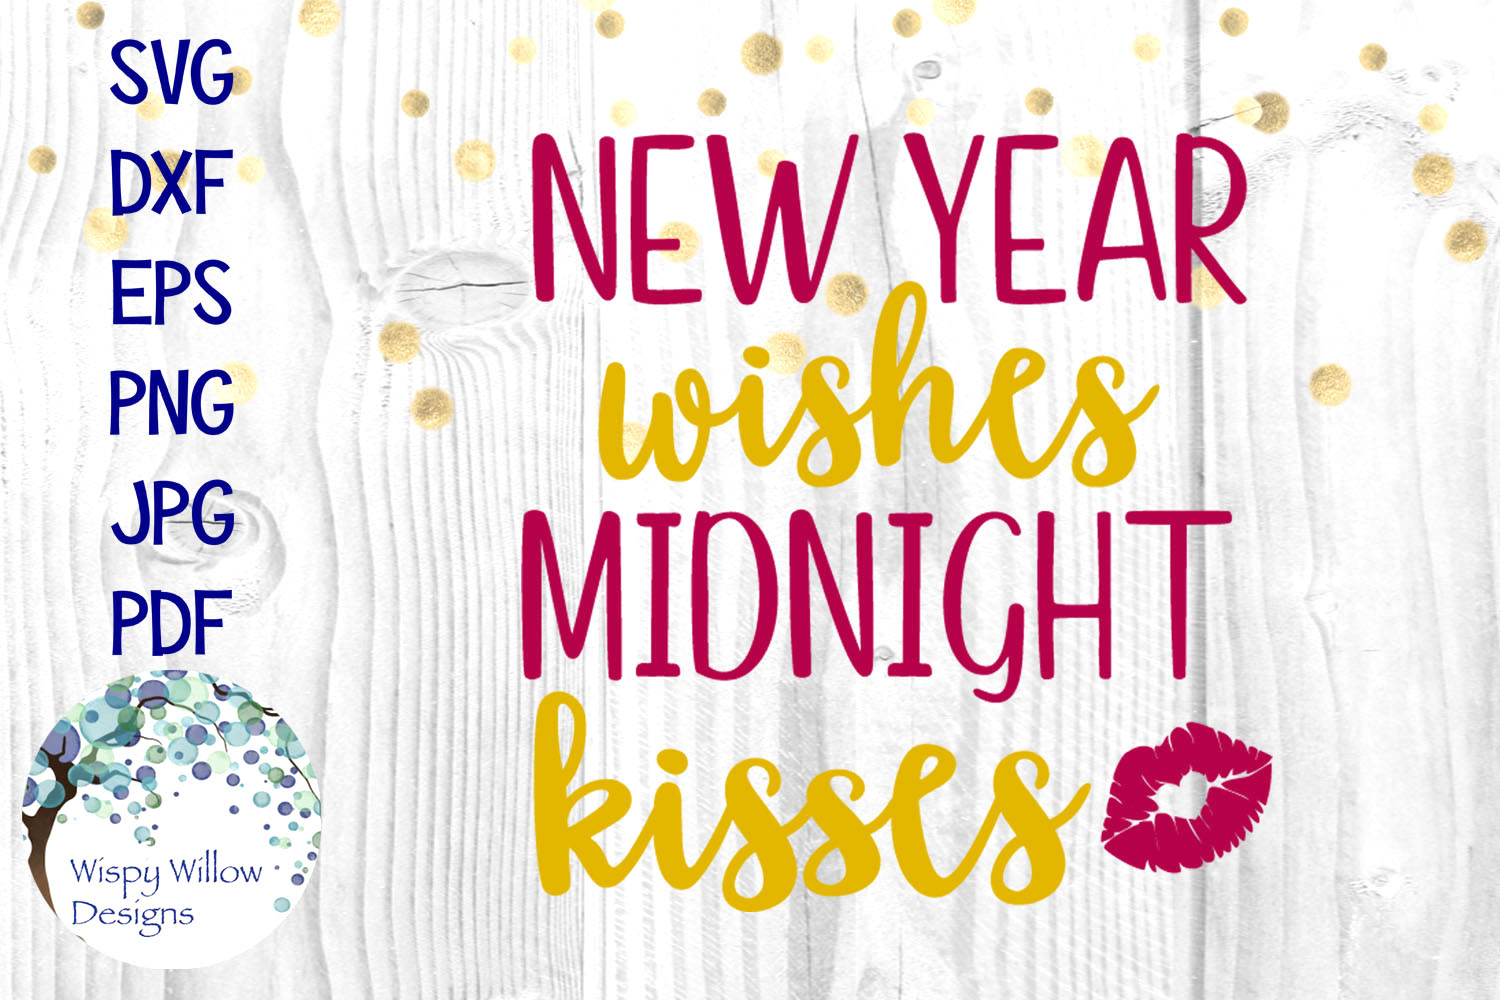 New Year Wishes Midnight Kisses | New Year's Eve SVG example image 1